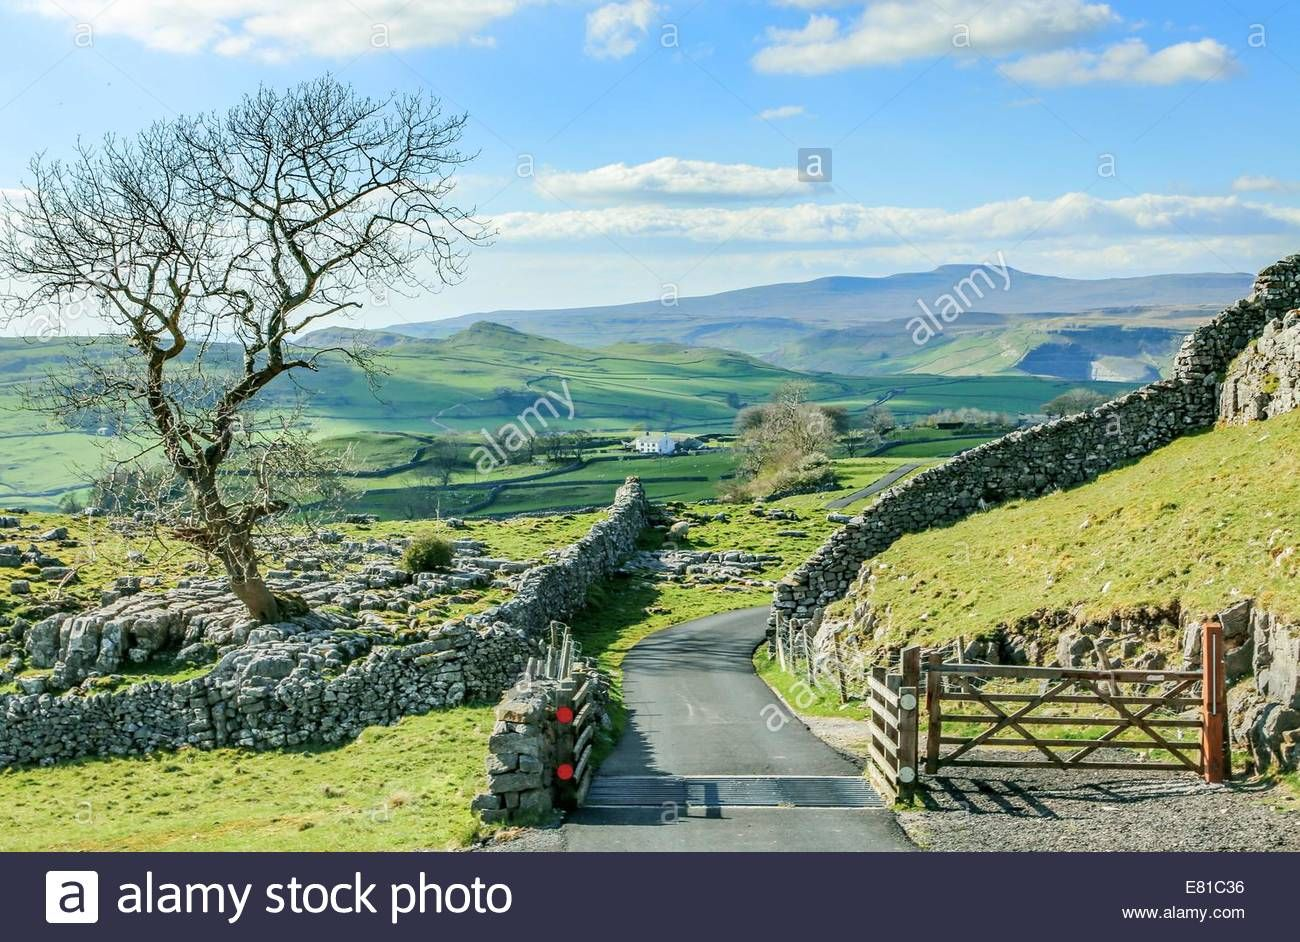 Download This Stock Image Beautiful Yorkshire Dales Landscape Stunning Scenery England Tourism Uk Green Rolling Hills In 2020 England Tourism Yorkshire Dales Scenery